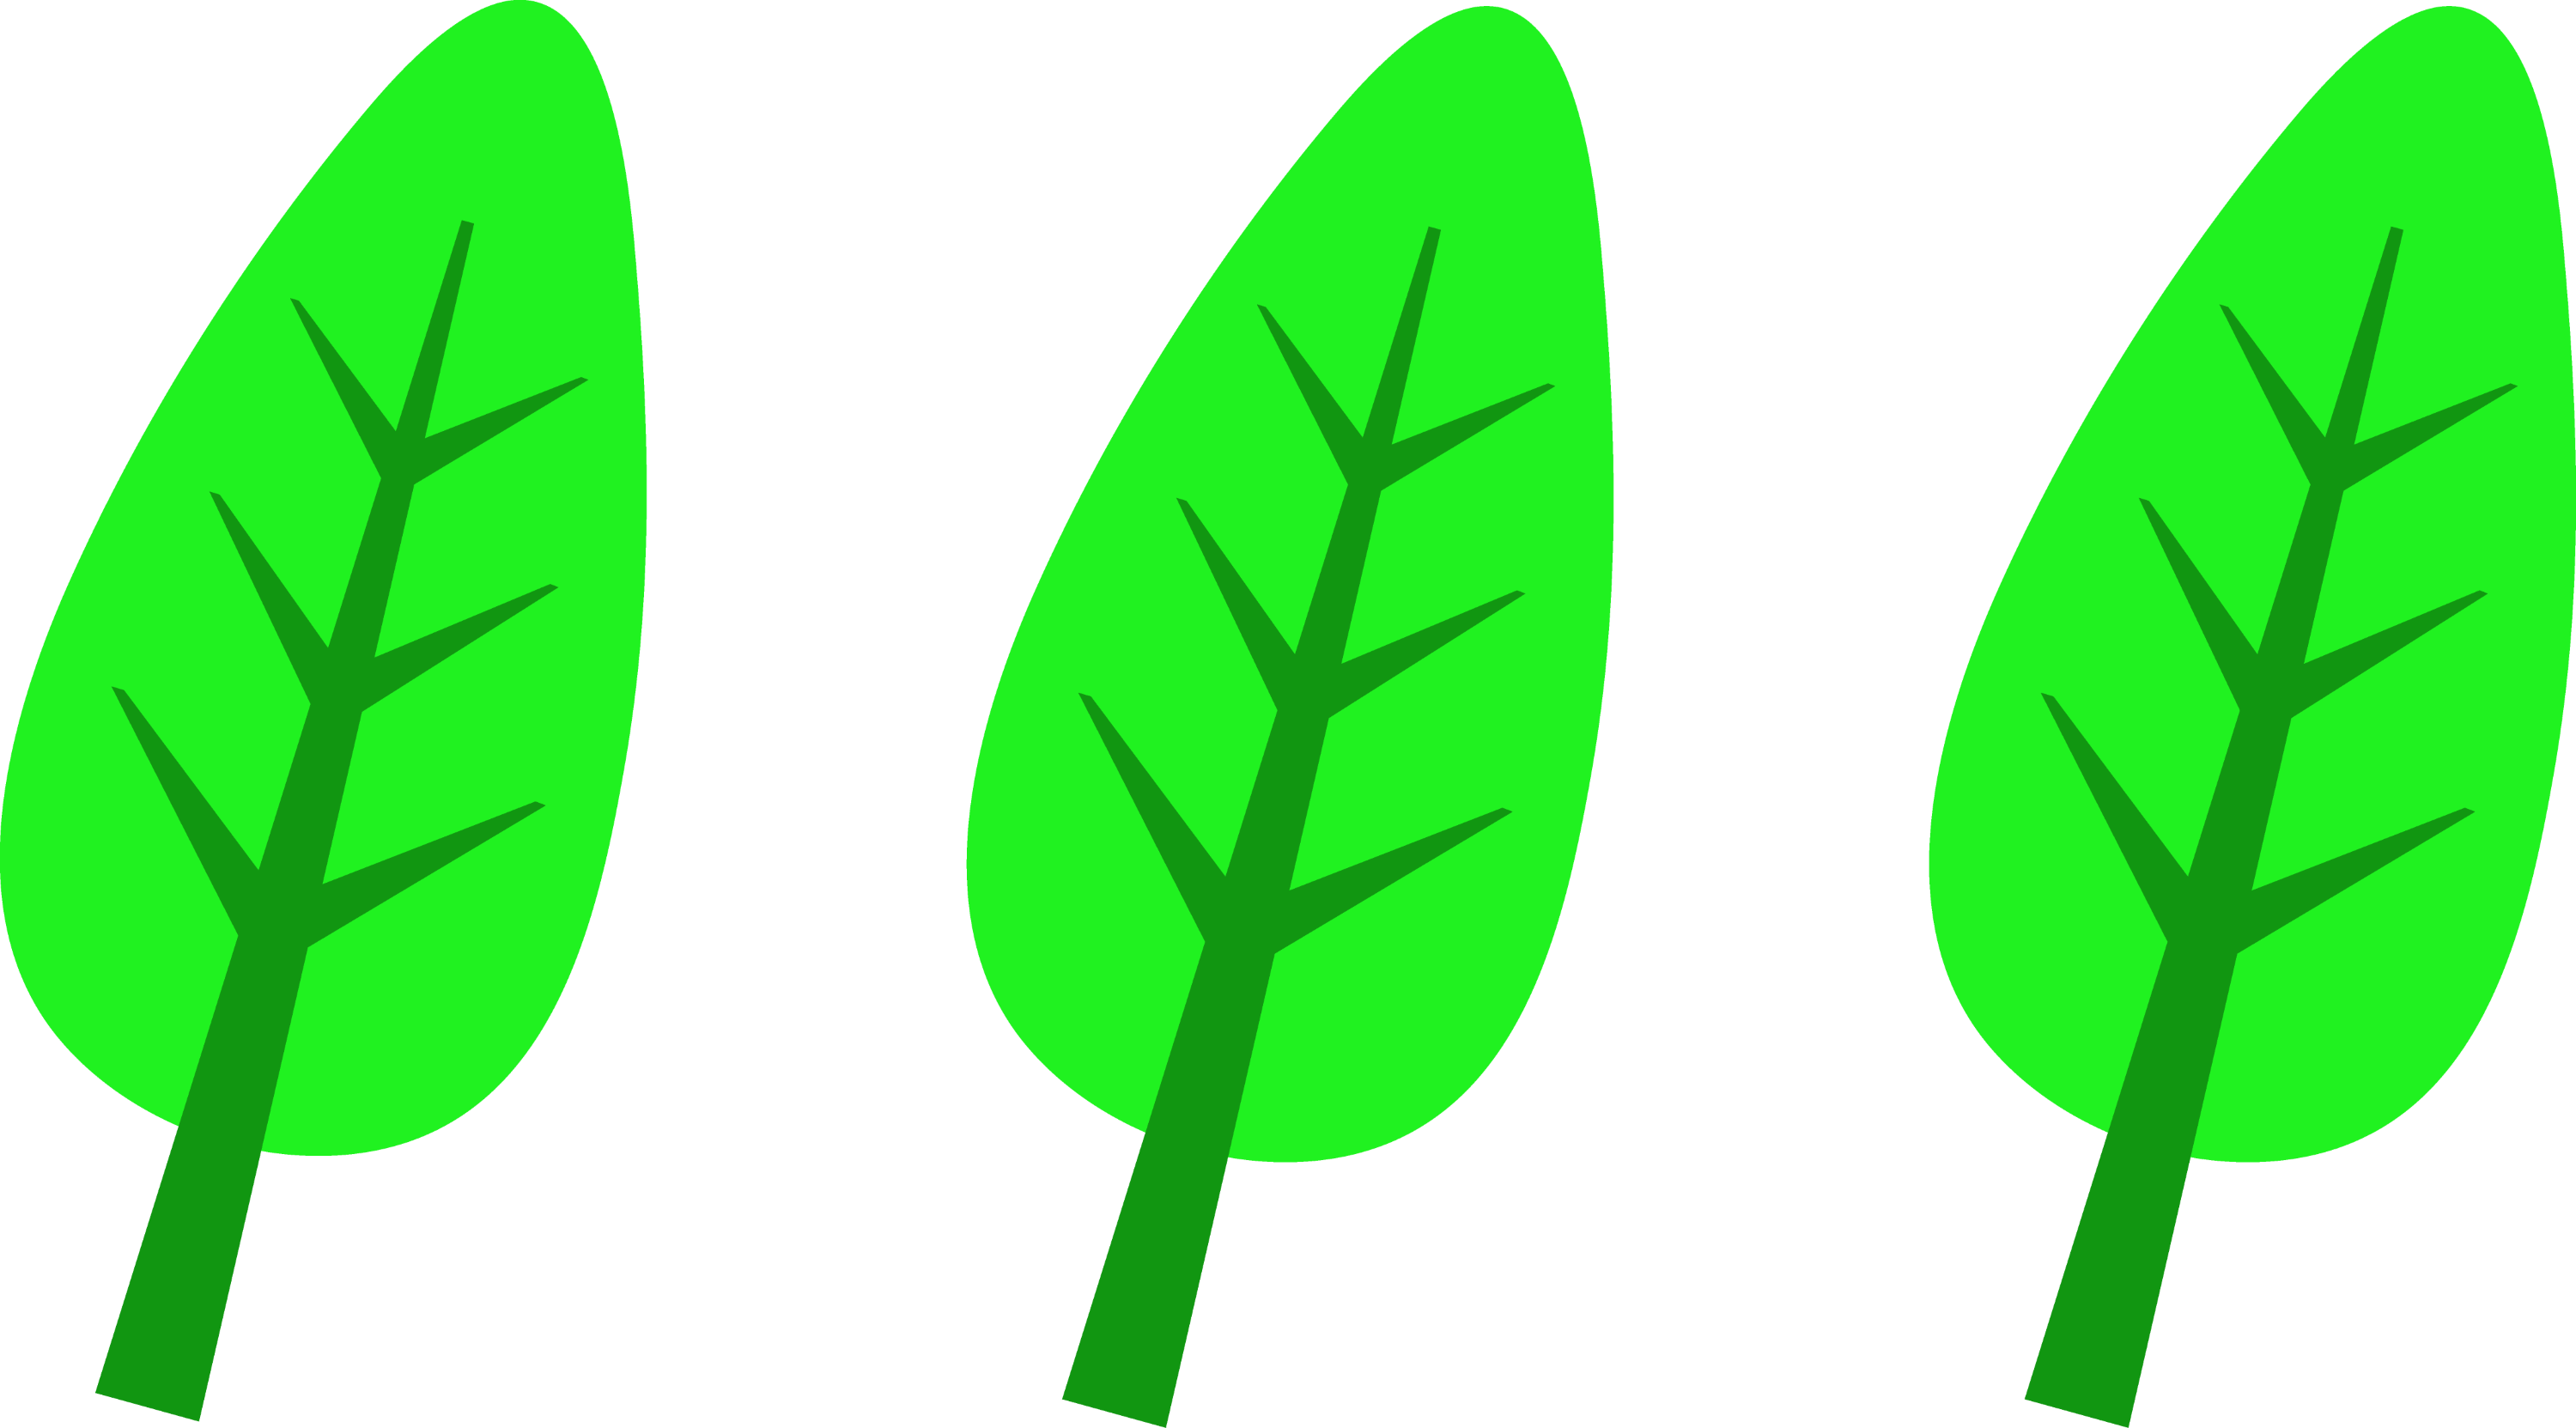 clipart leaves - photo #42